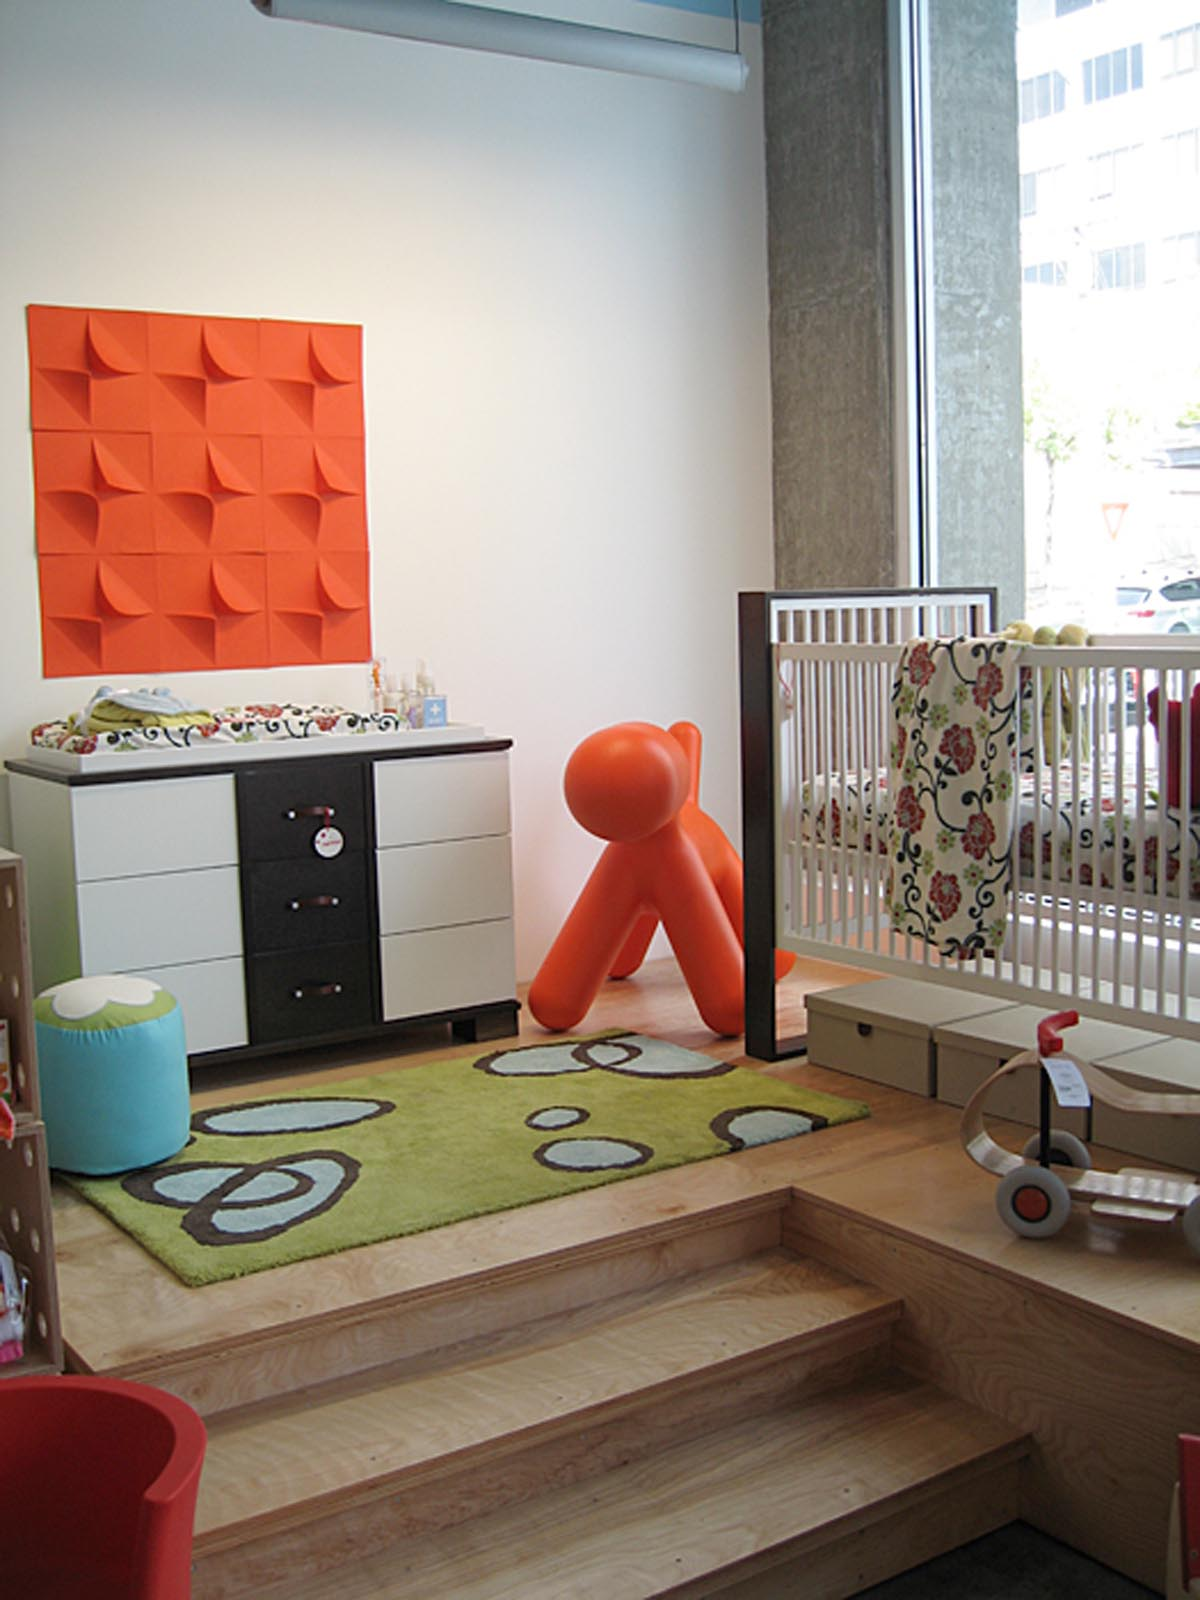 Tottini baby's room and crib